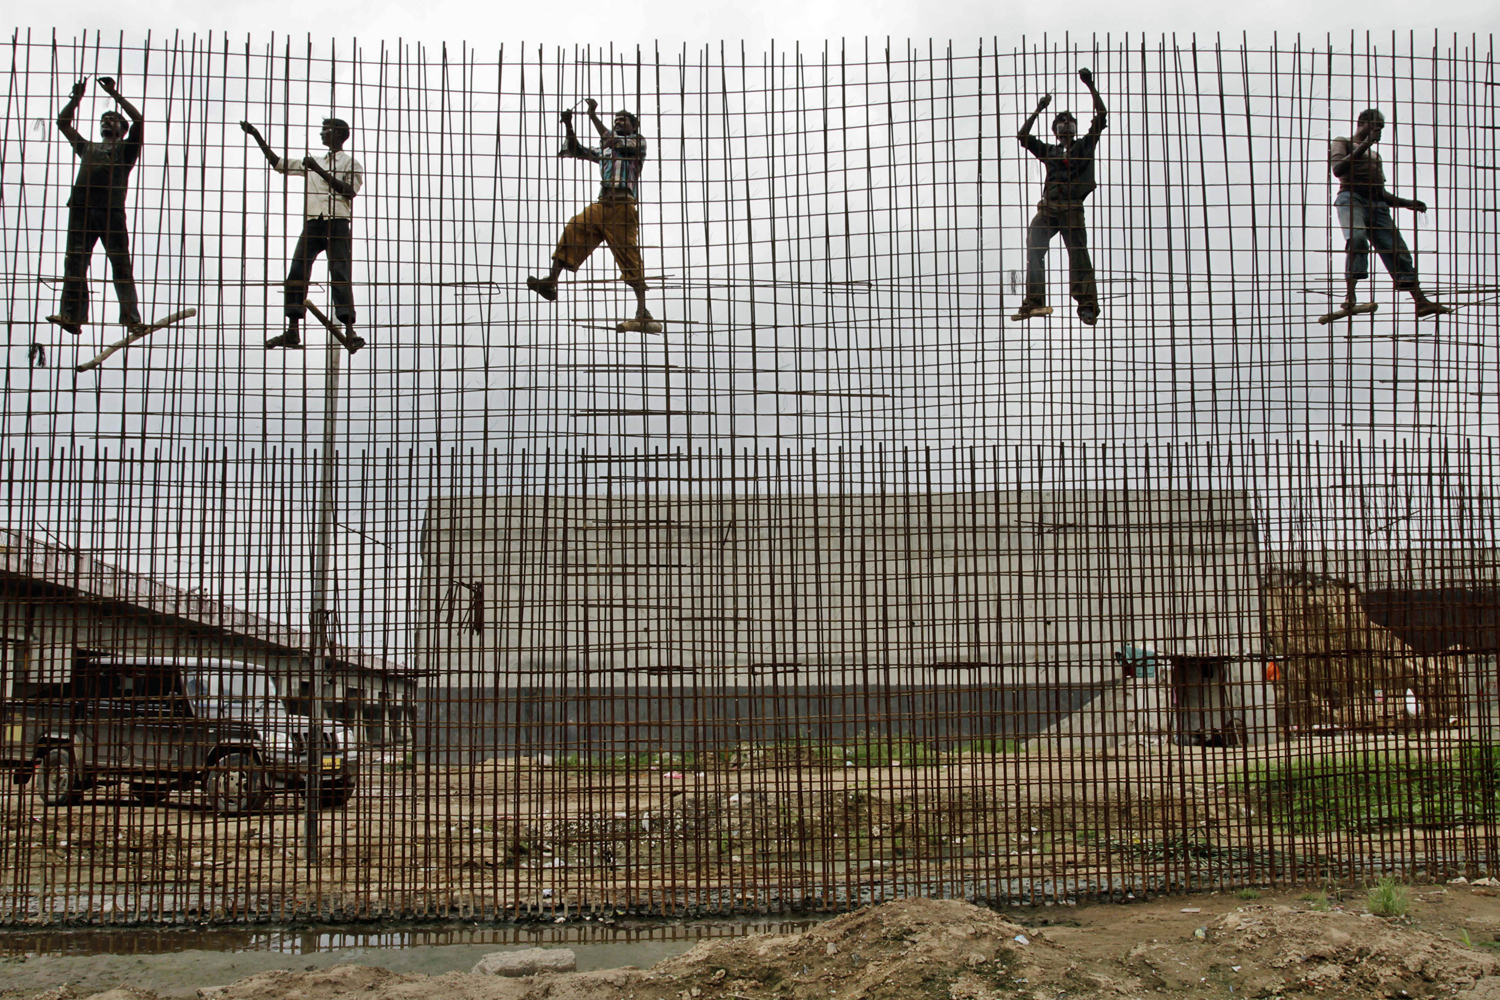 September 12, 2011. Indian laborers work at Sabarmati Riverfront Development Project site in Ahmadabad, India.